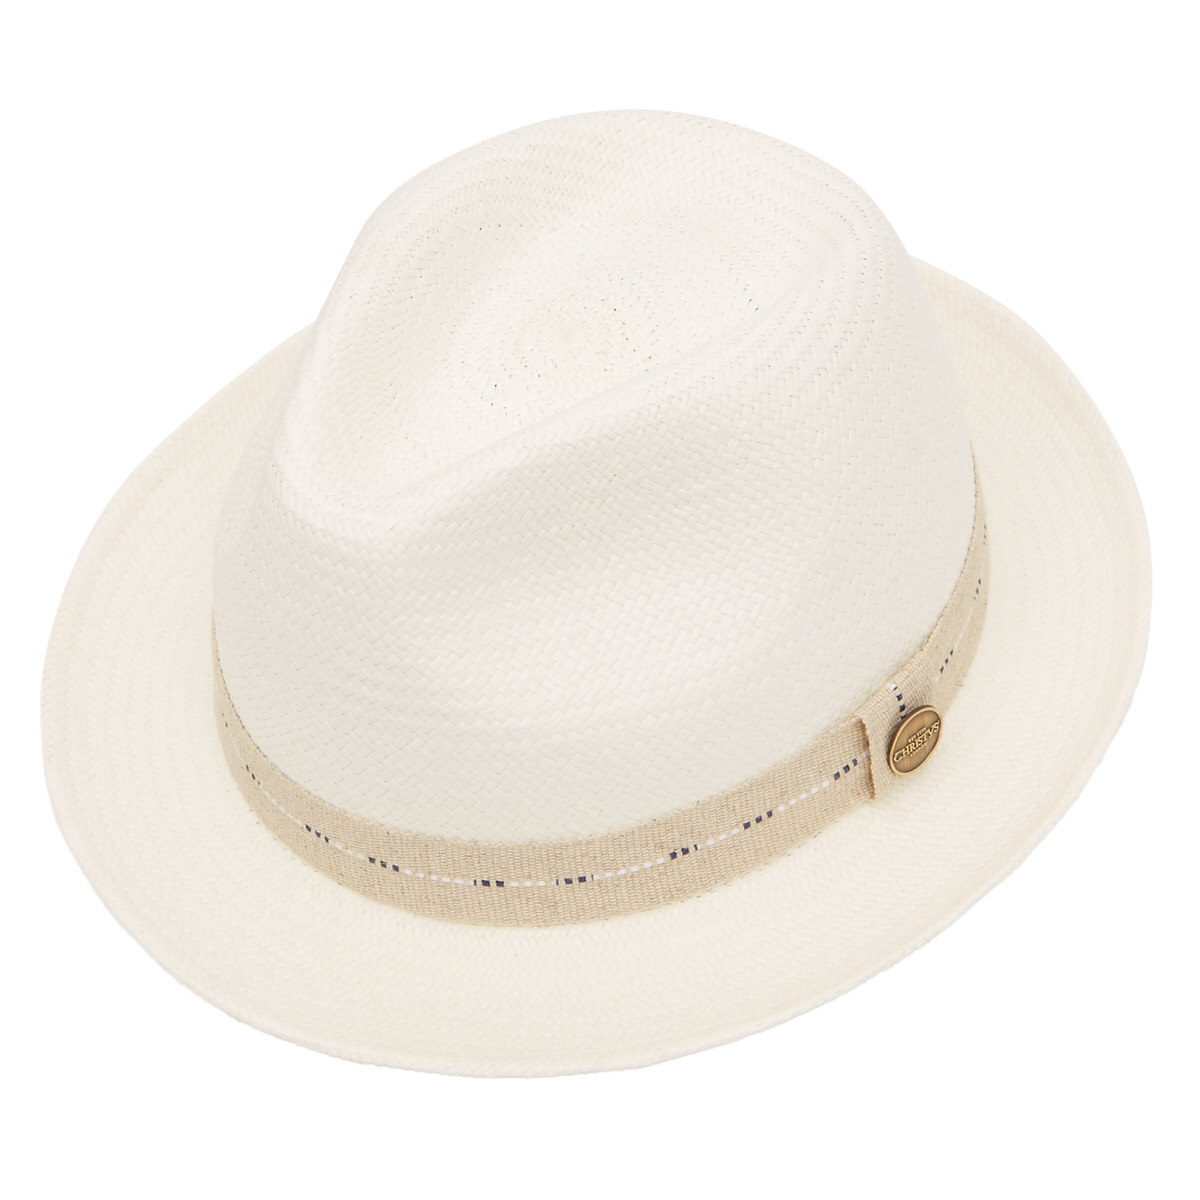 Cuenca Cameron Panama Hat - Bleached